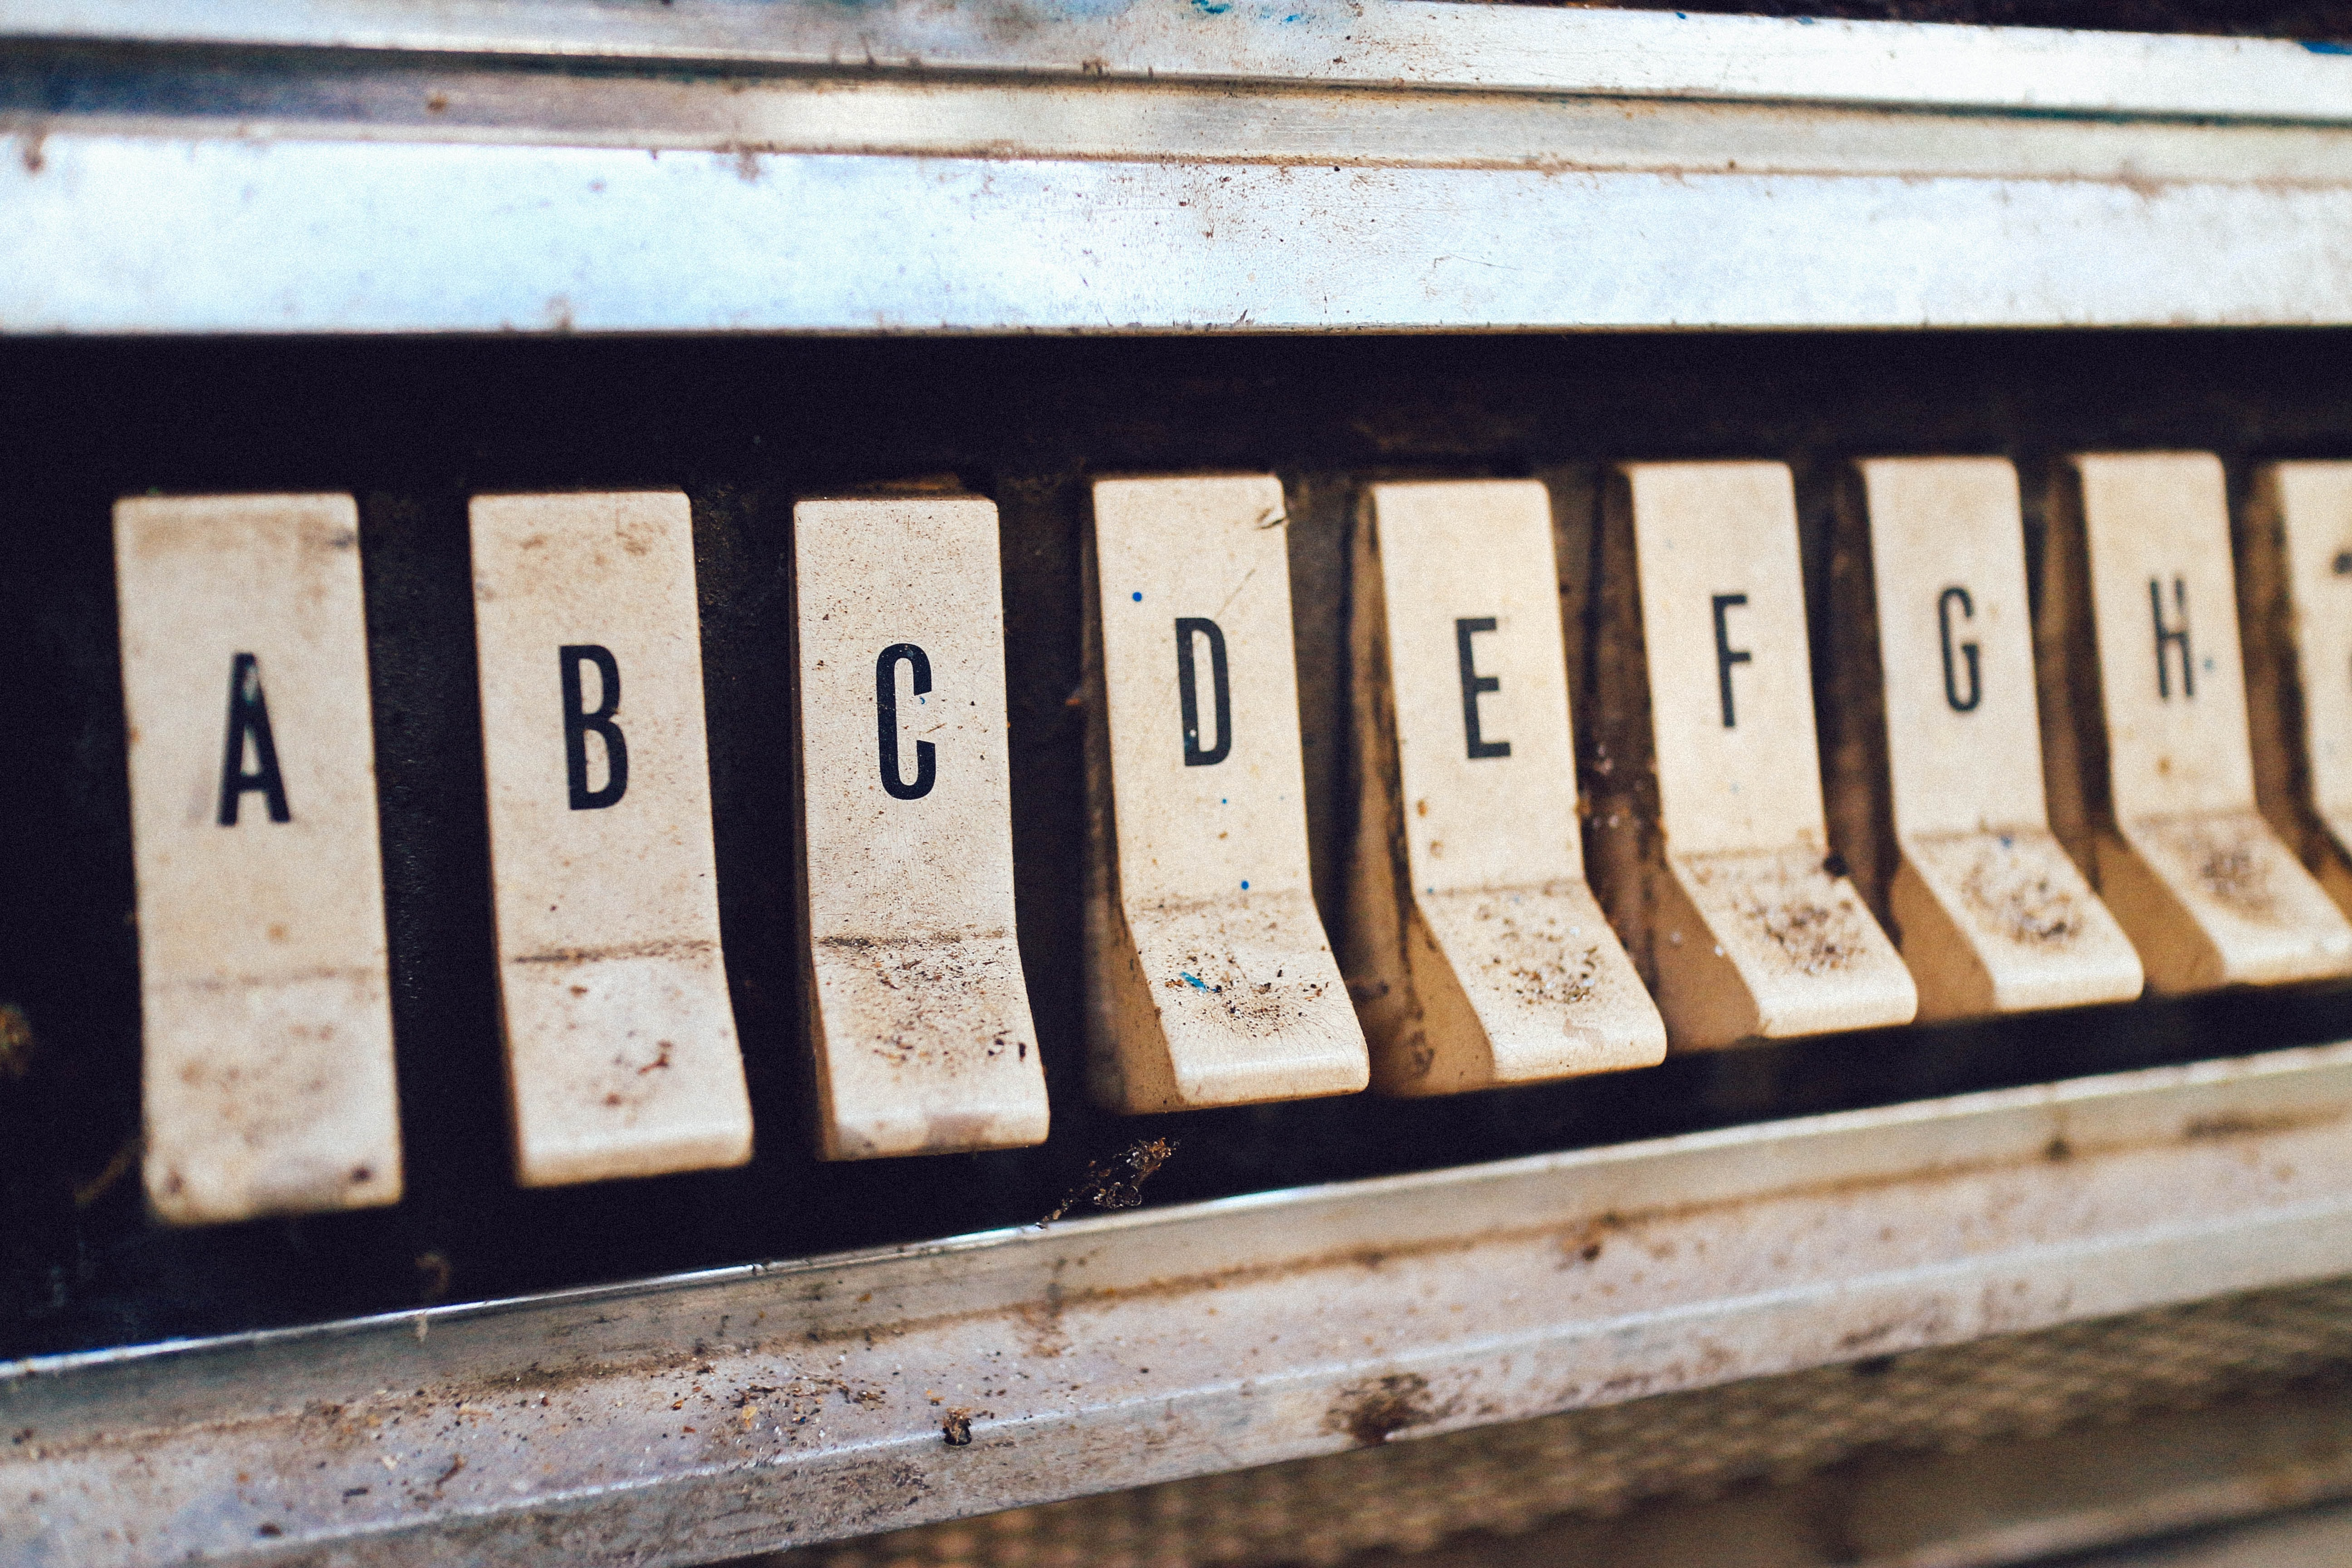 Letter buttons on an old, dirty jukebox.